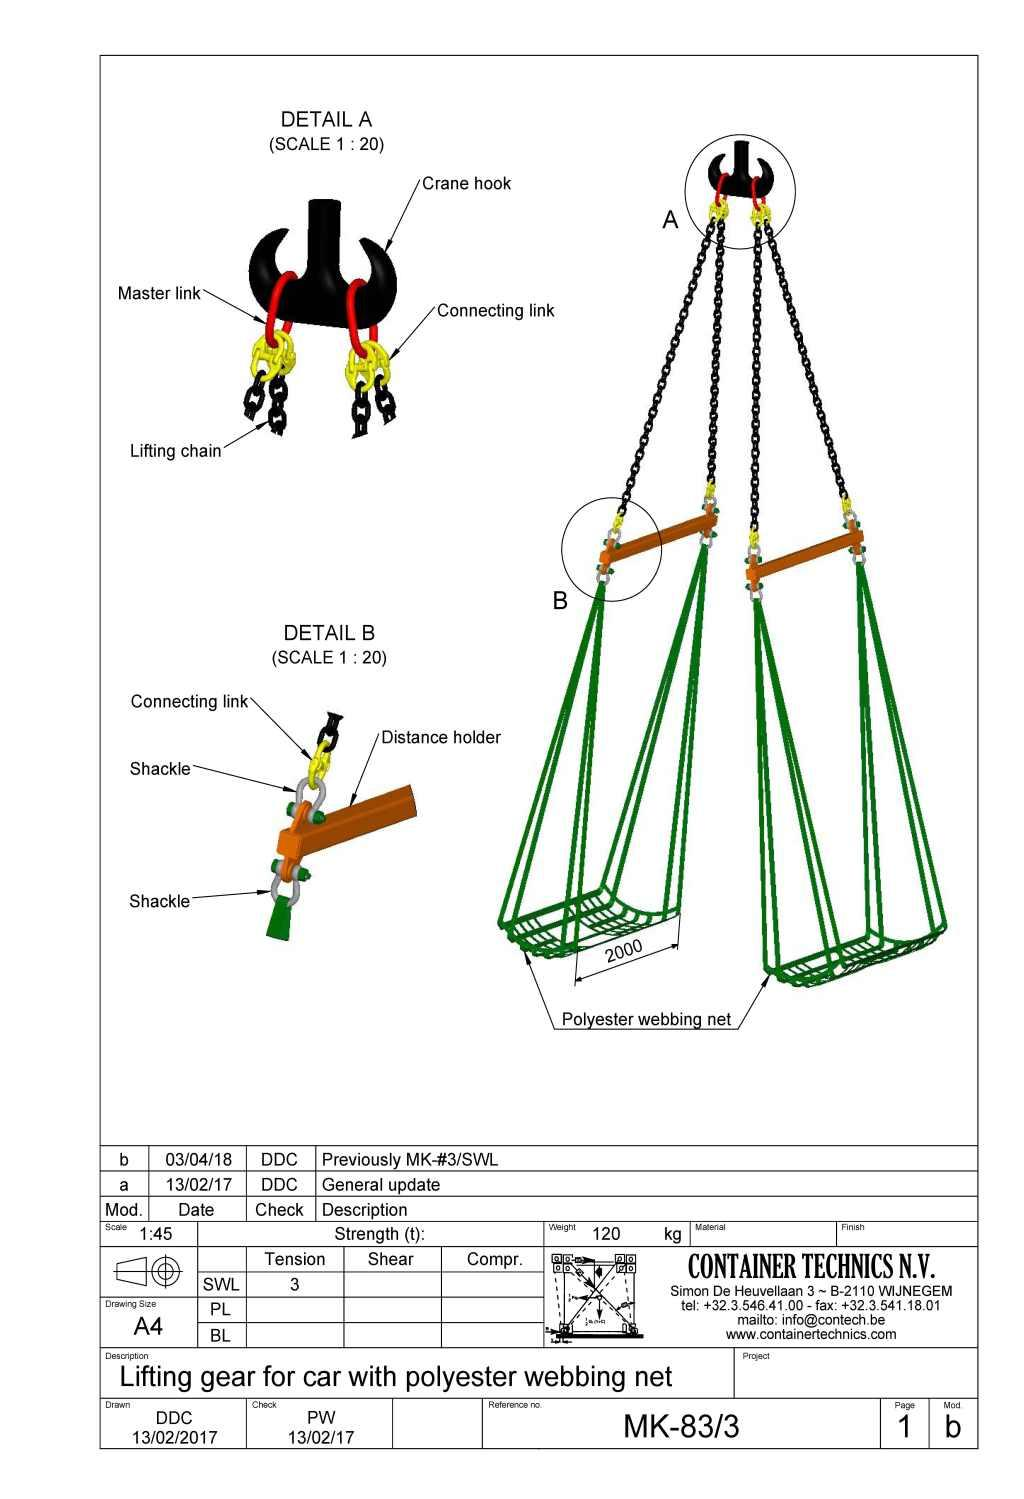 hight resolution of mk 83 car lifting gear with polyester net swl 3t